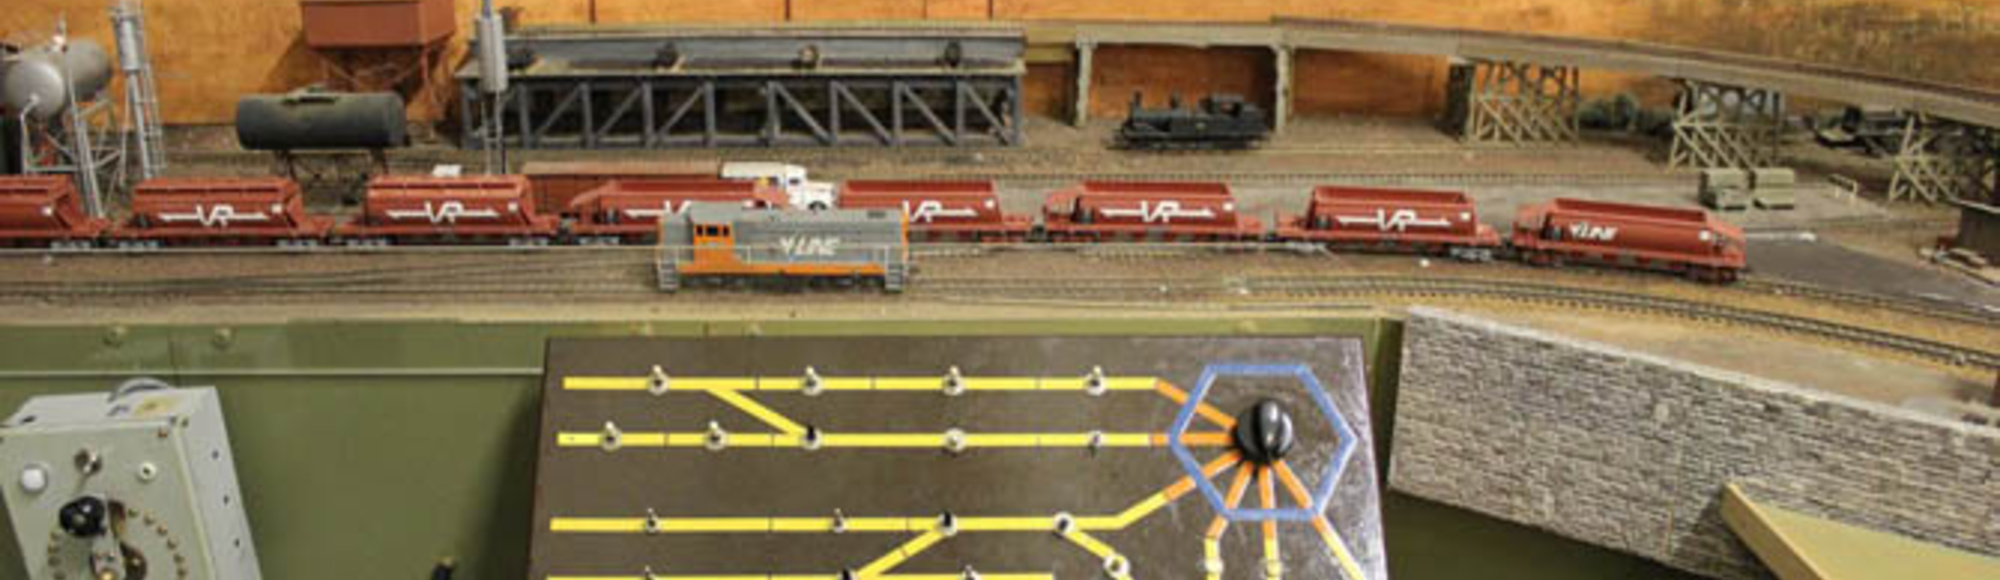 Model Trains and the Secret of Happiness